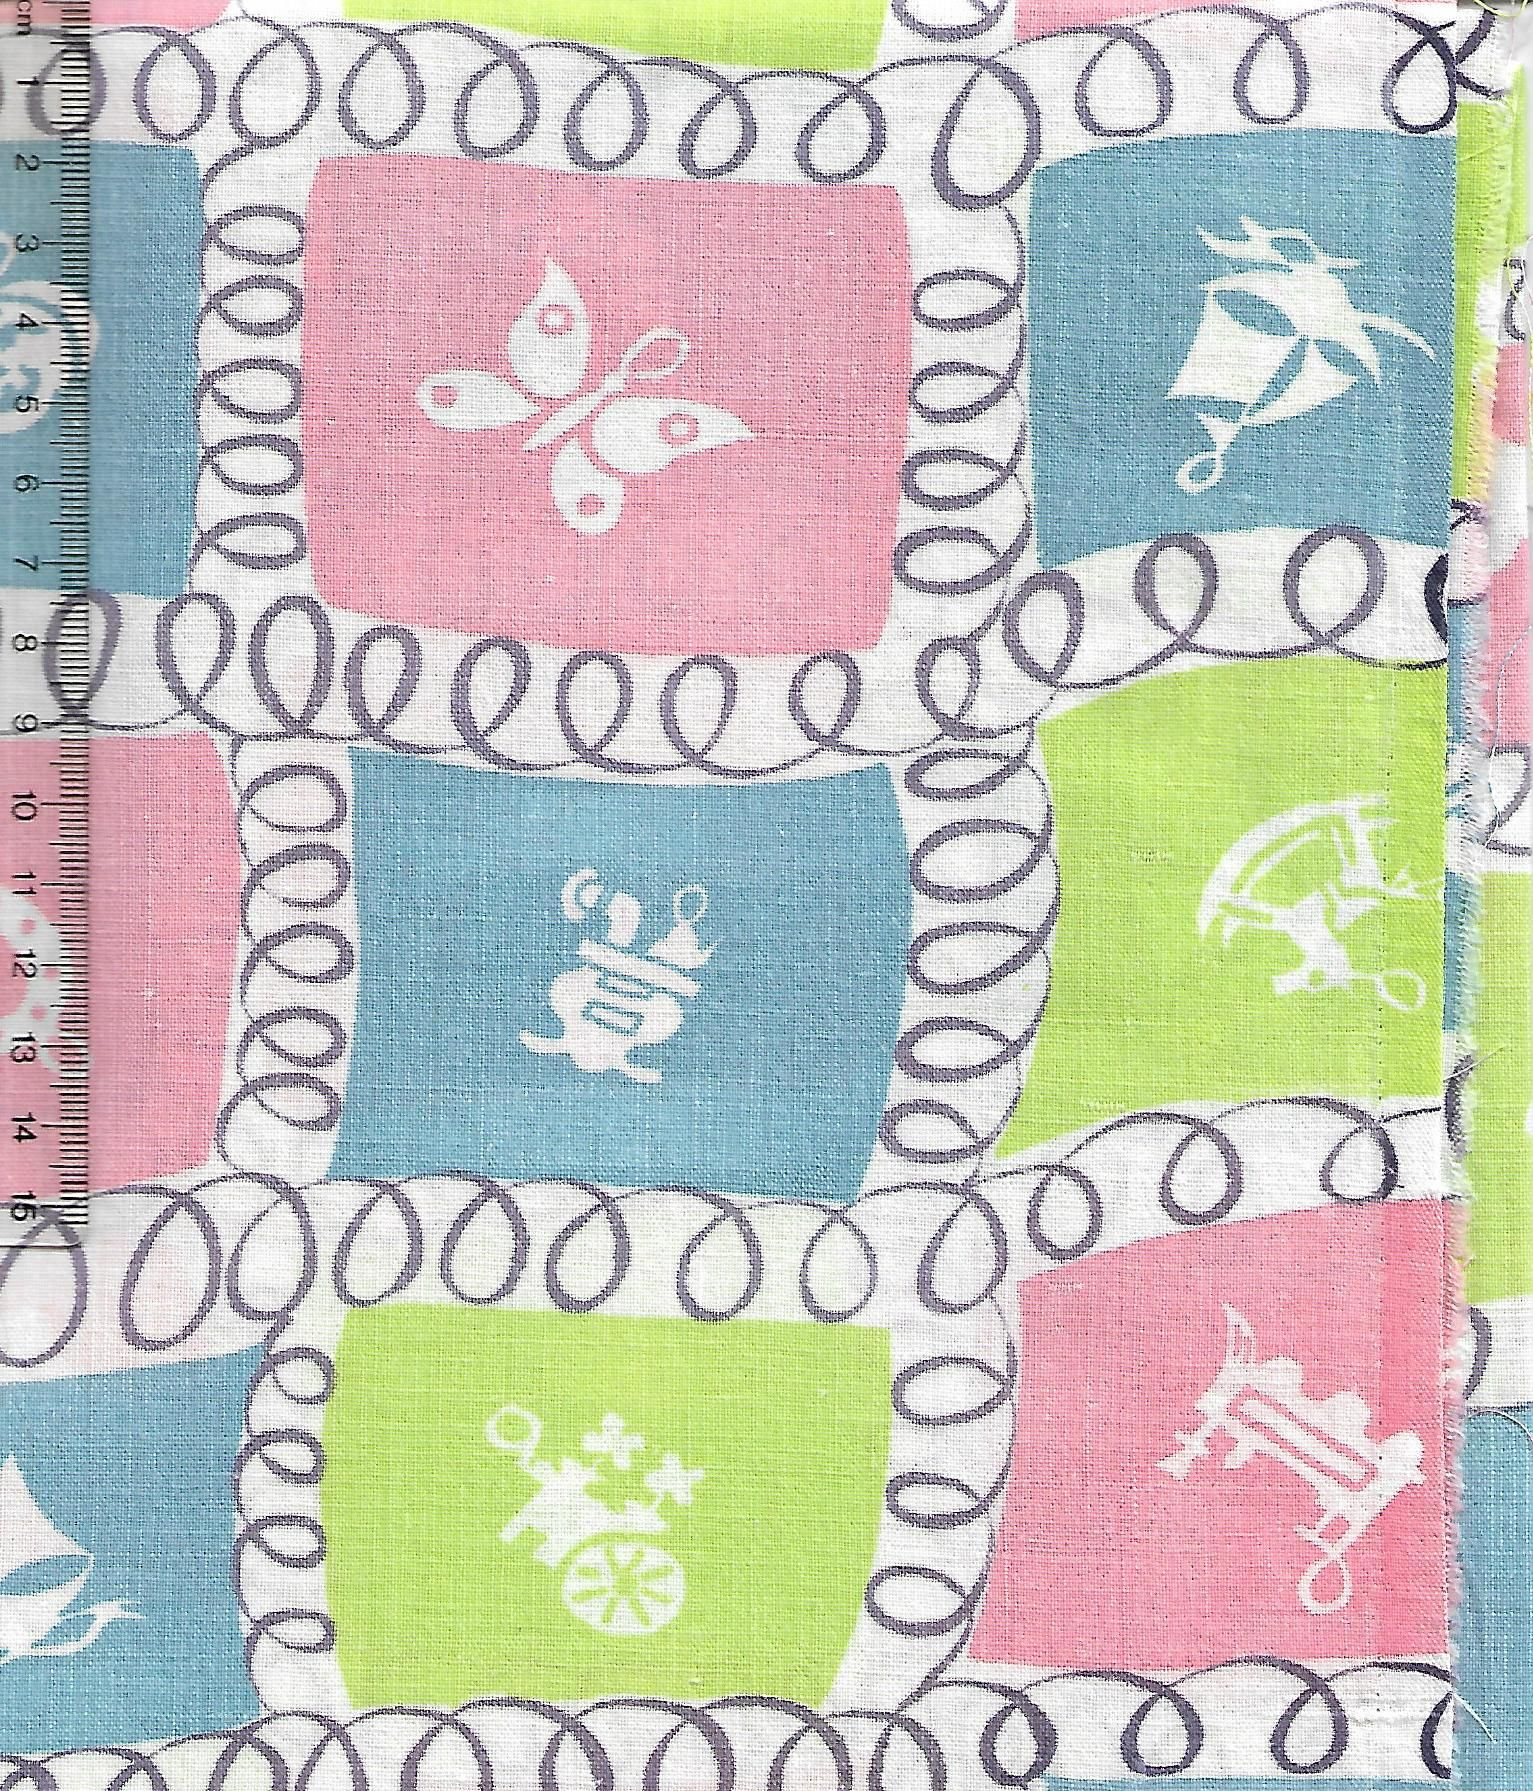 Vintage feedsack fabric- lucky charms #vintage #retro #interiors #gogreen #patchwork #sew #collect #americana